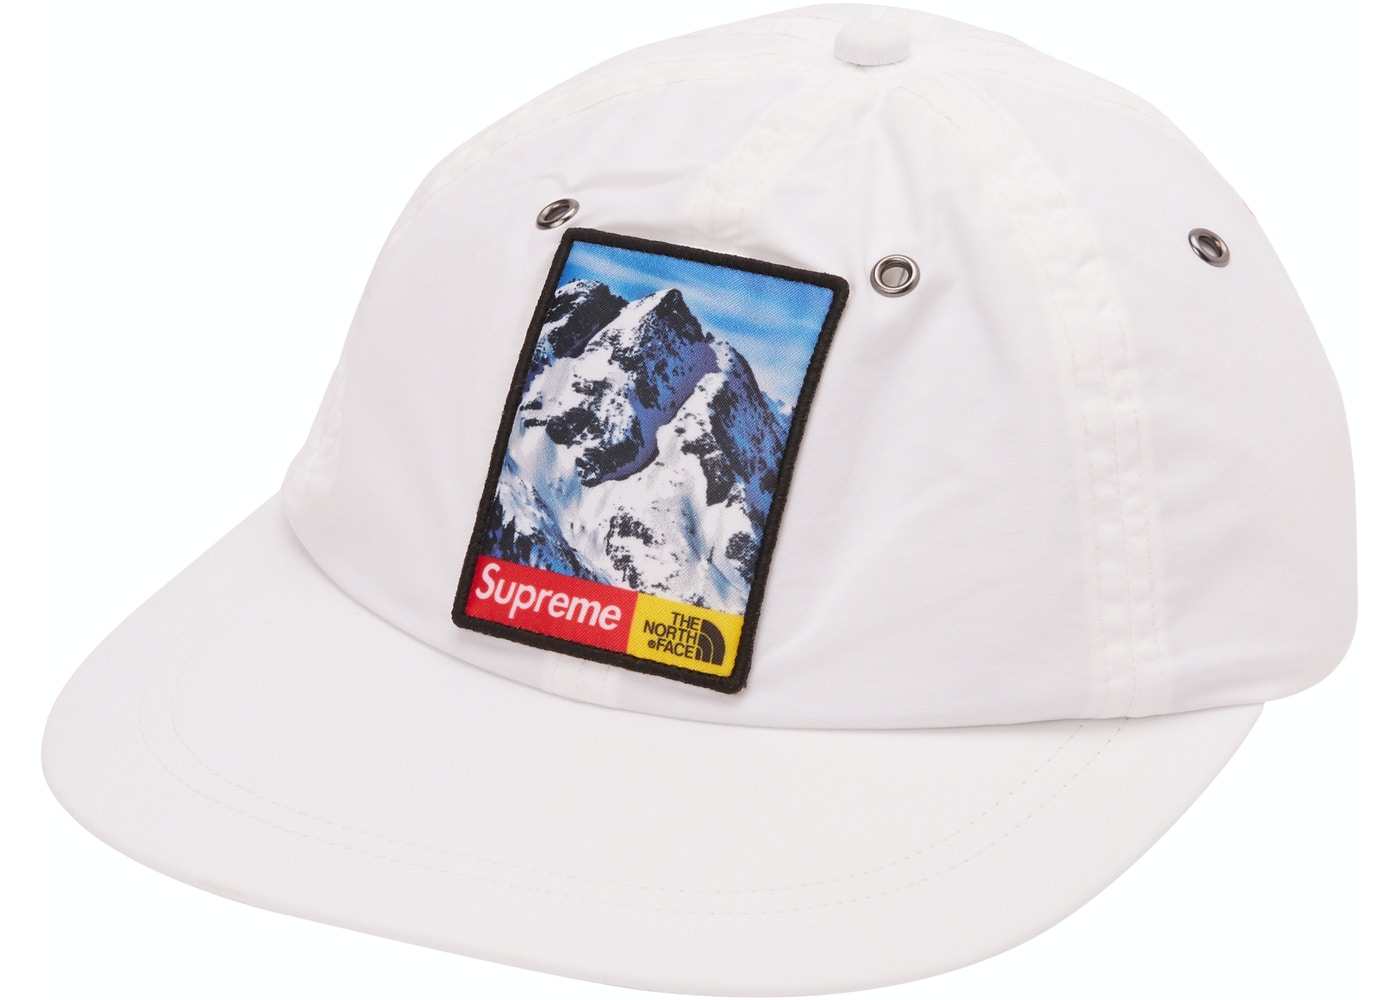 Supreme The North Face Mountain 6-Panel Hat White - TNF-MTN-FW17 db5ad6d8dc5